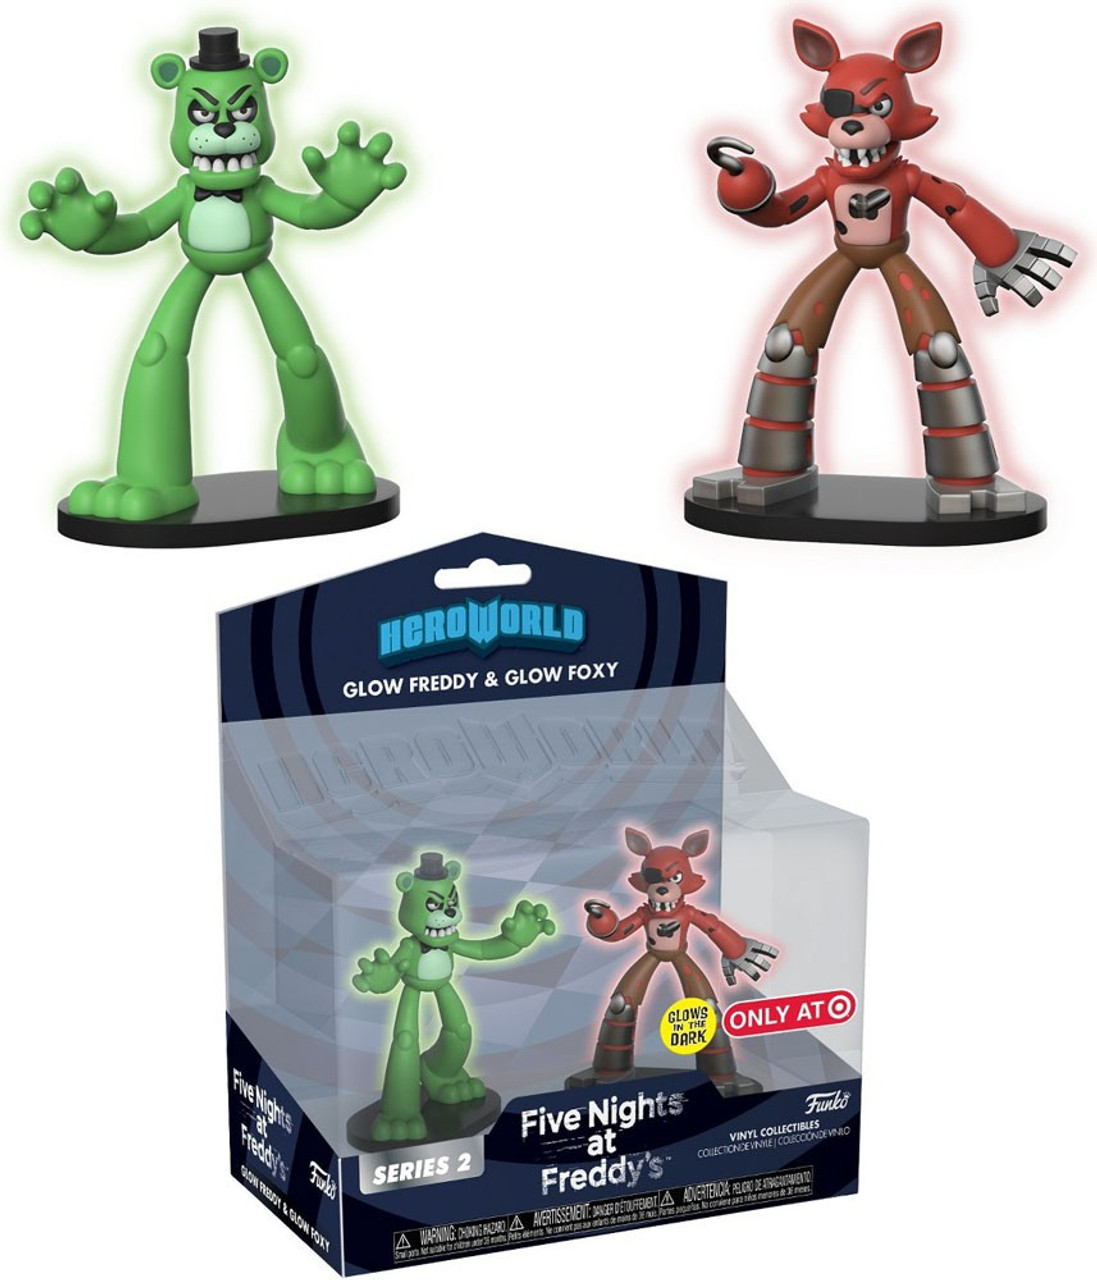 Finding Springtraps Secret And Halloween Event Badges In Roblox Funko Five Nights At Freddys Hero World Series 2 Glow Freddy Glow Foxy Exclusive 4 Vinyl Figure 2 Pack Toywiz